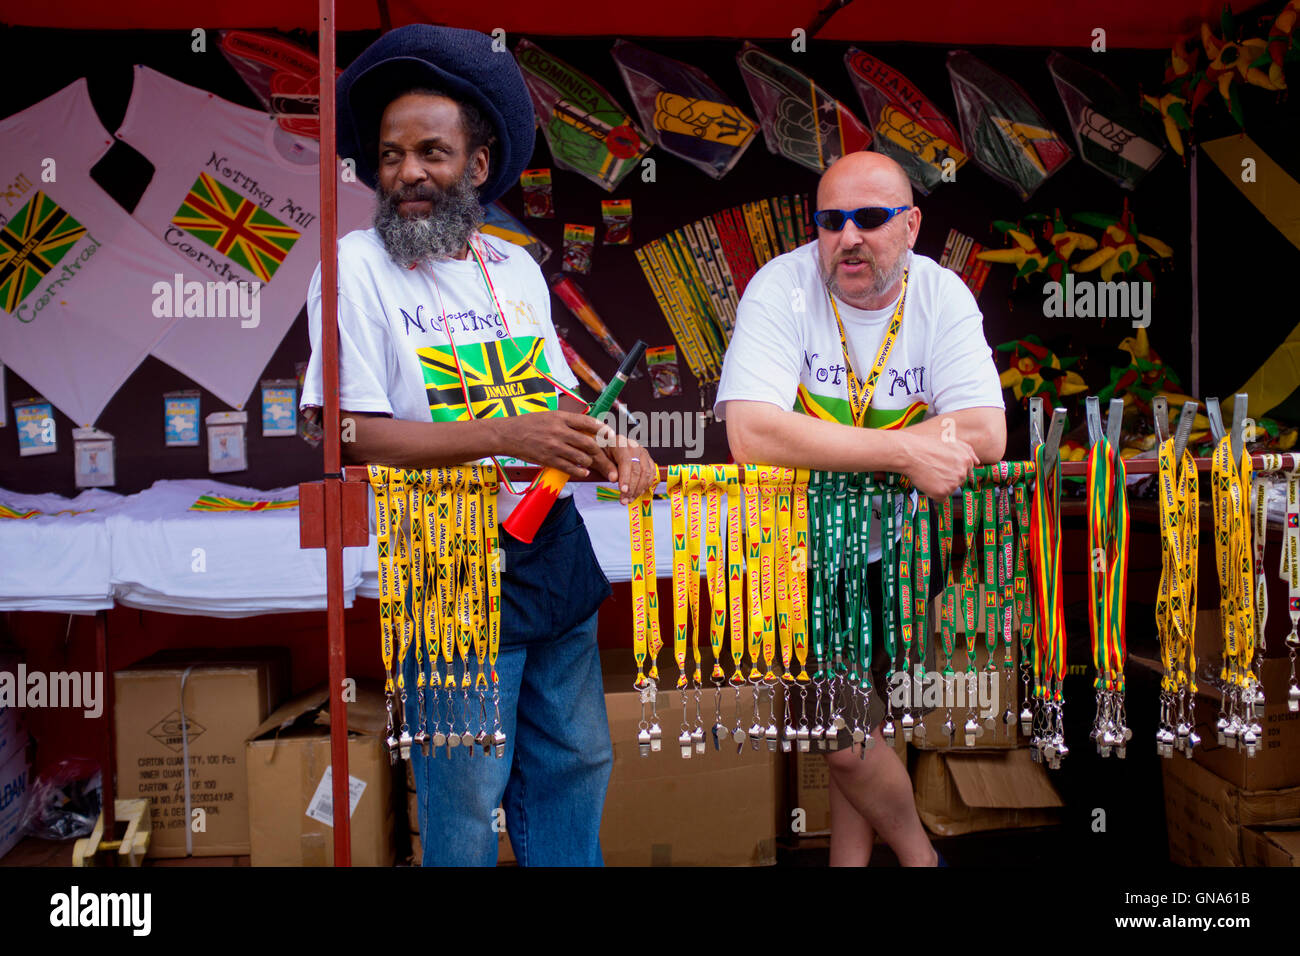 Carnival vendors at the 50th Notting Hill Carnival, London, August 29 2016. Credit:  wayne Tippetts/Alamy Live News - Stock Image